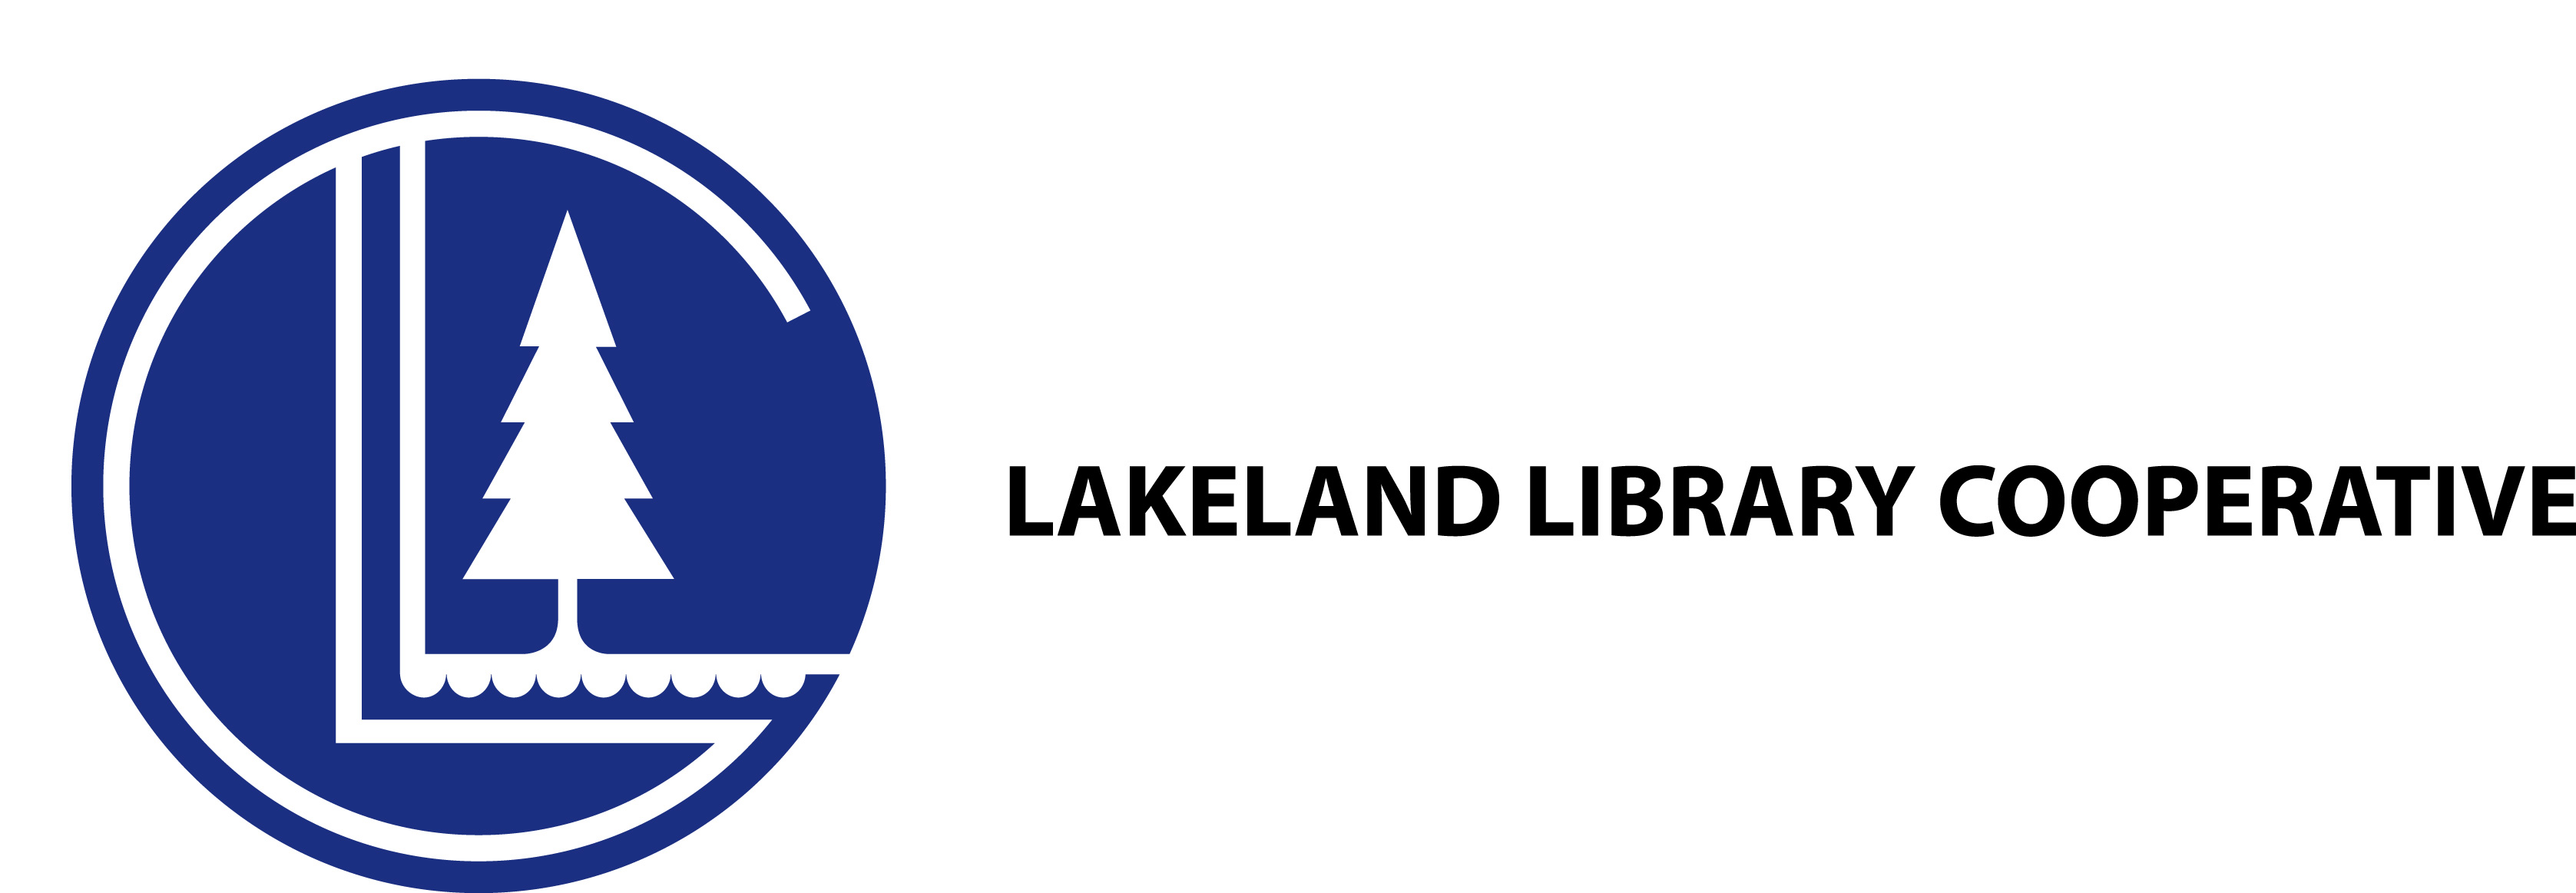 Lakeland Library Cooperative